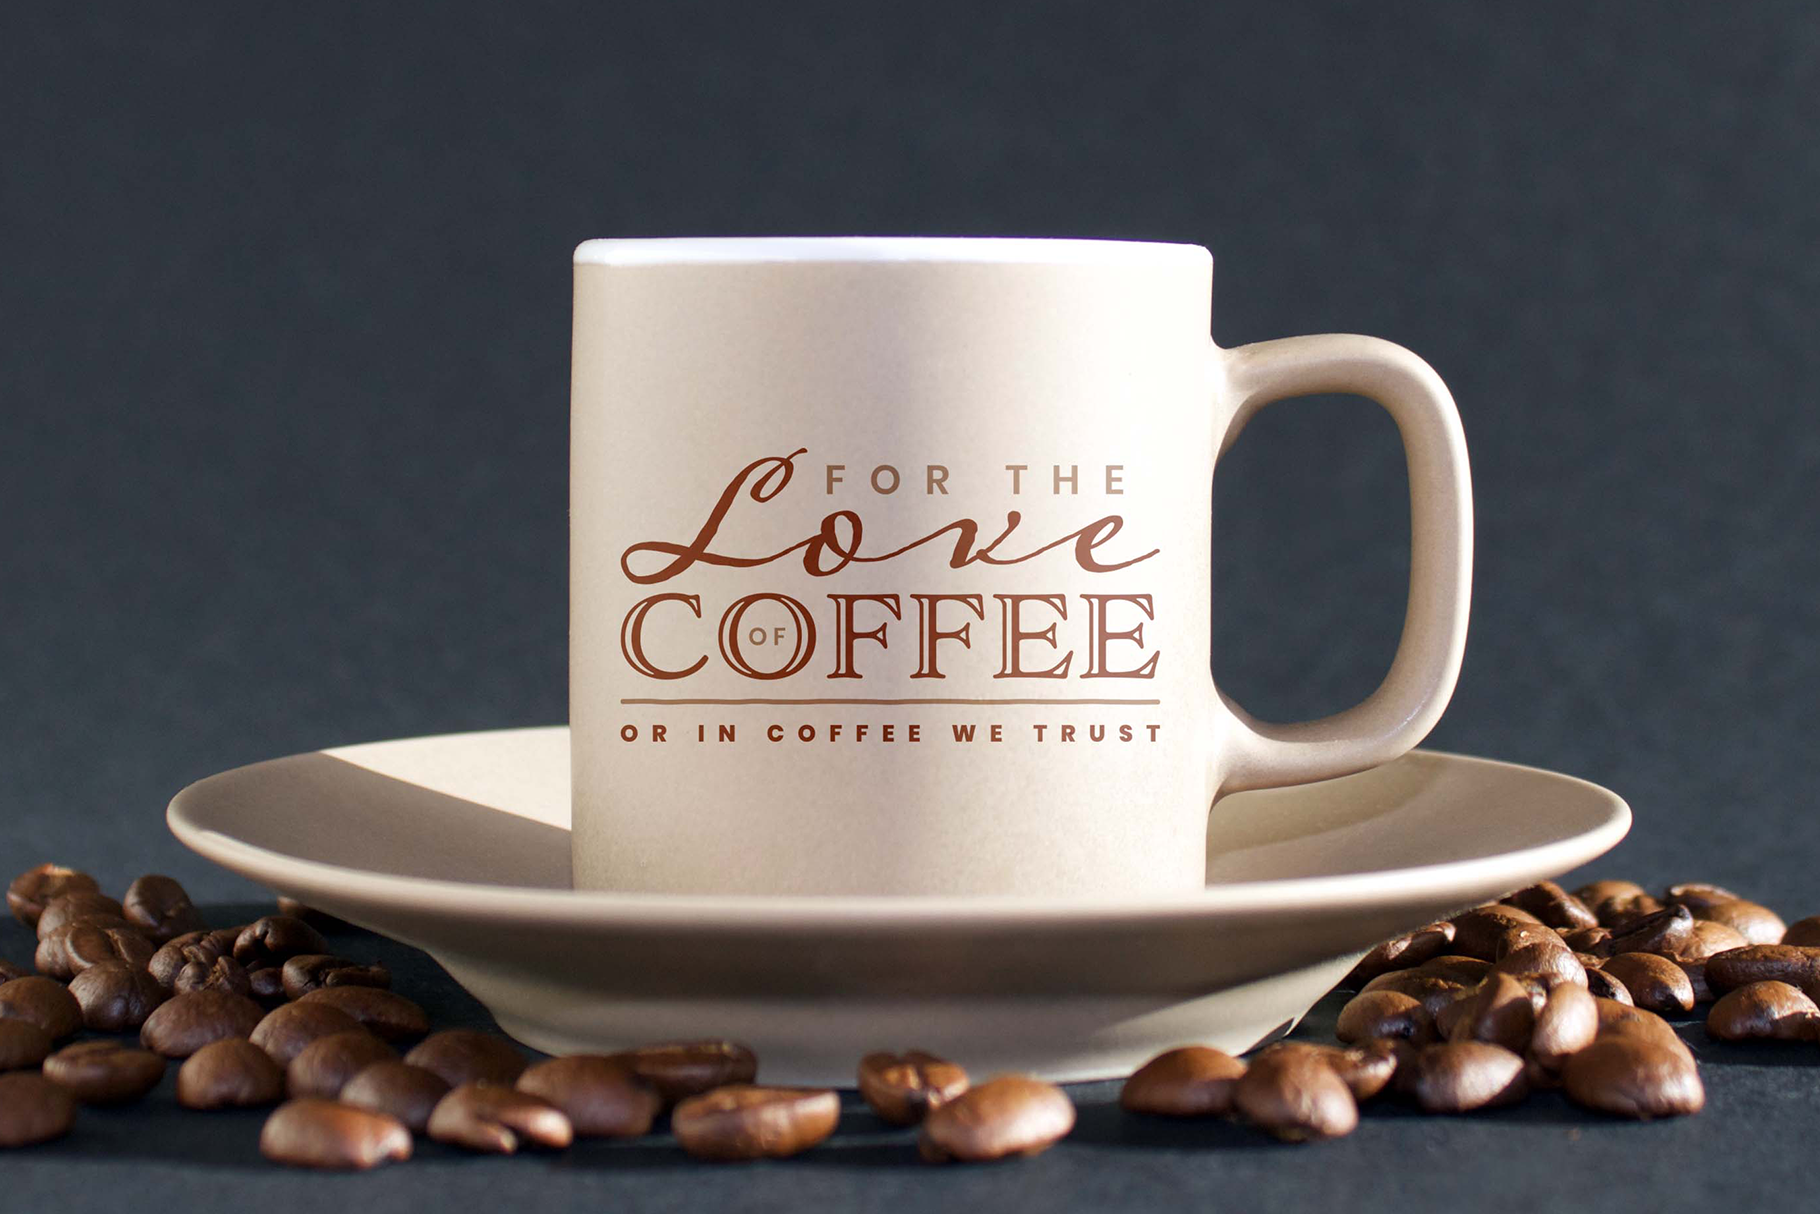 For The Love of Coffee example image 1